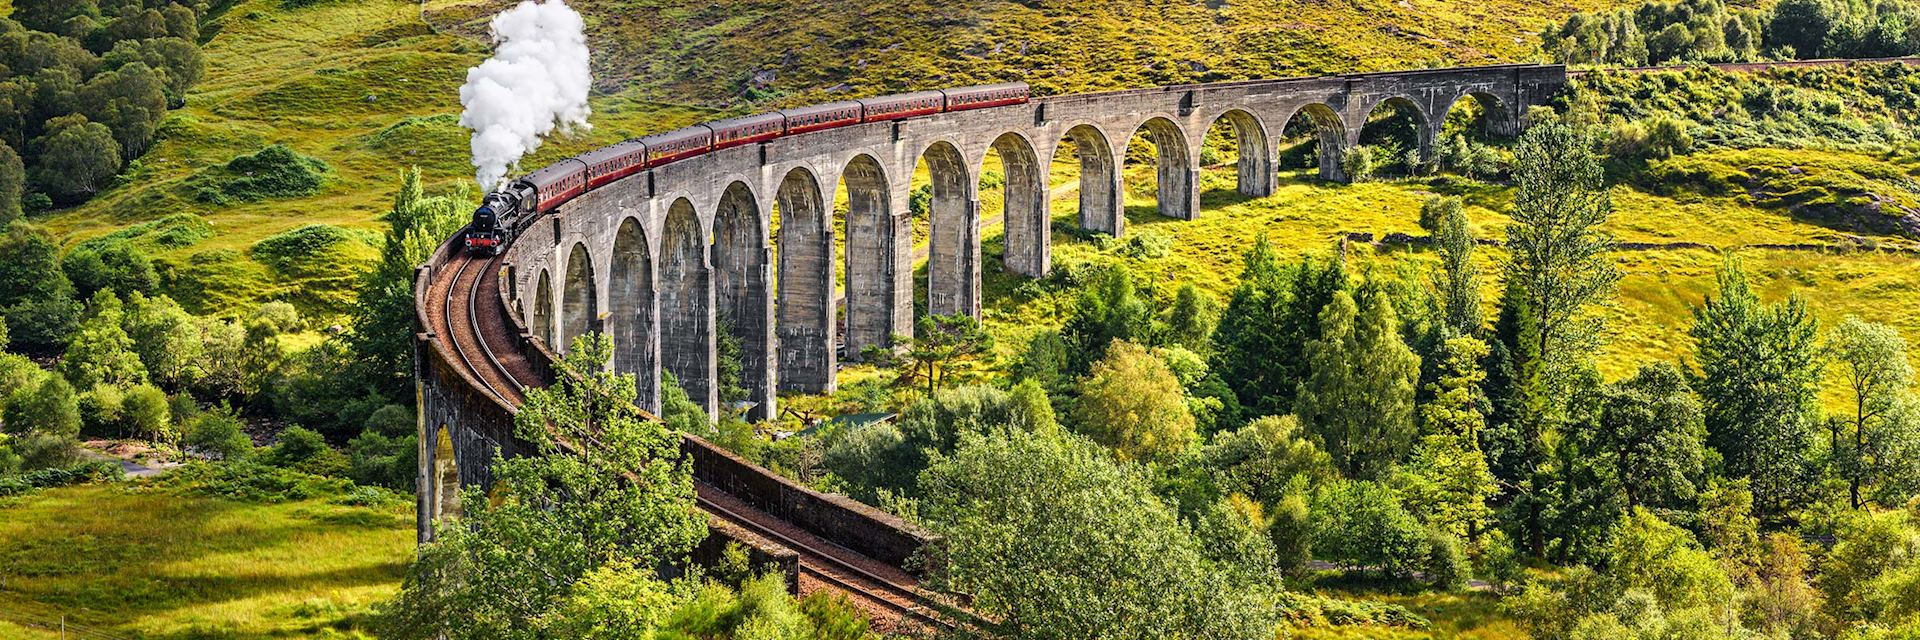 Glenfinnan Viaduct, Fort William